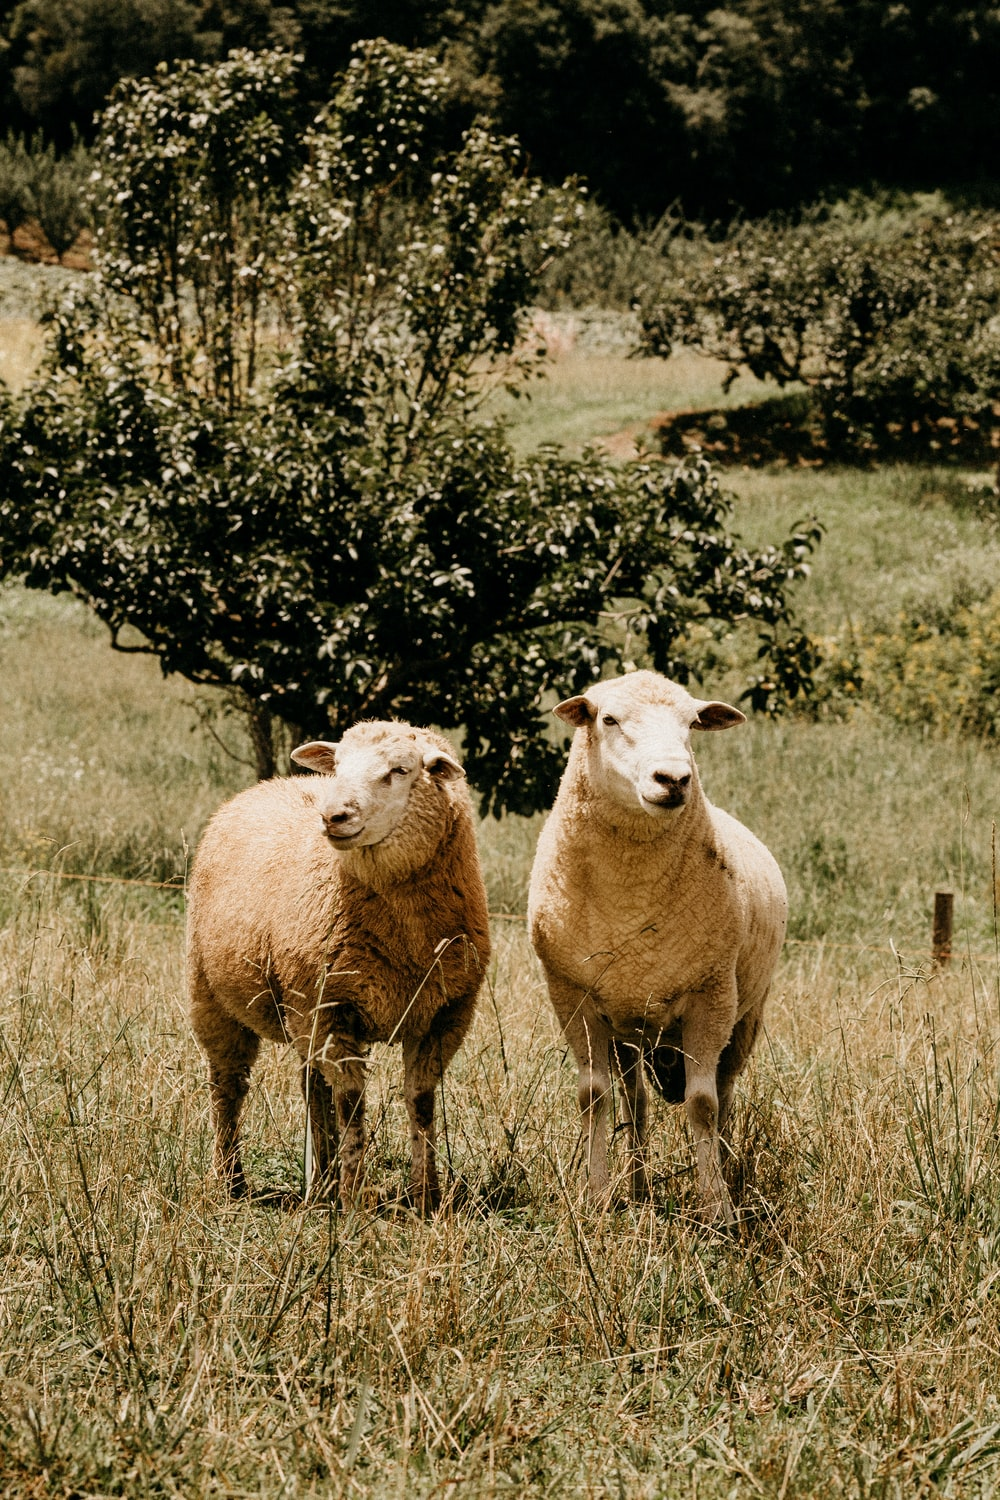 three sheep on grass field during daytime